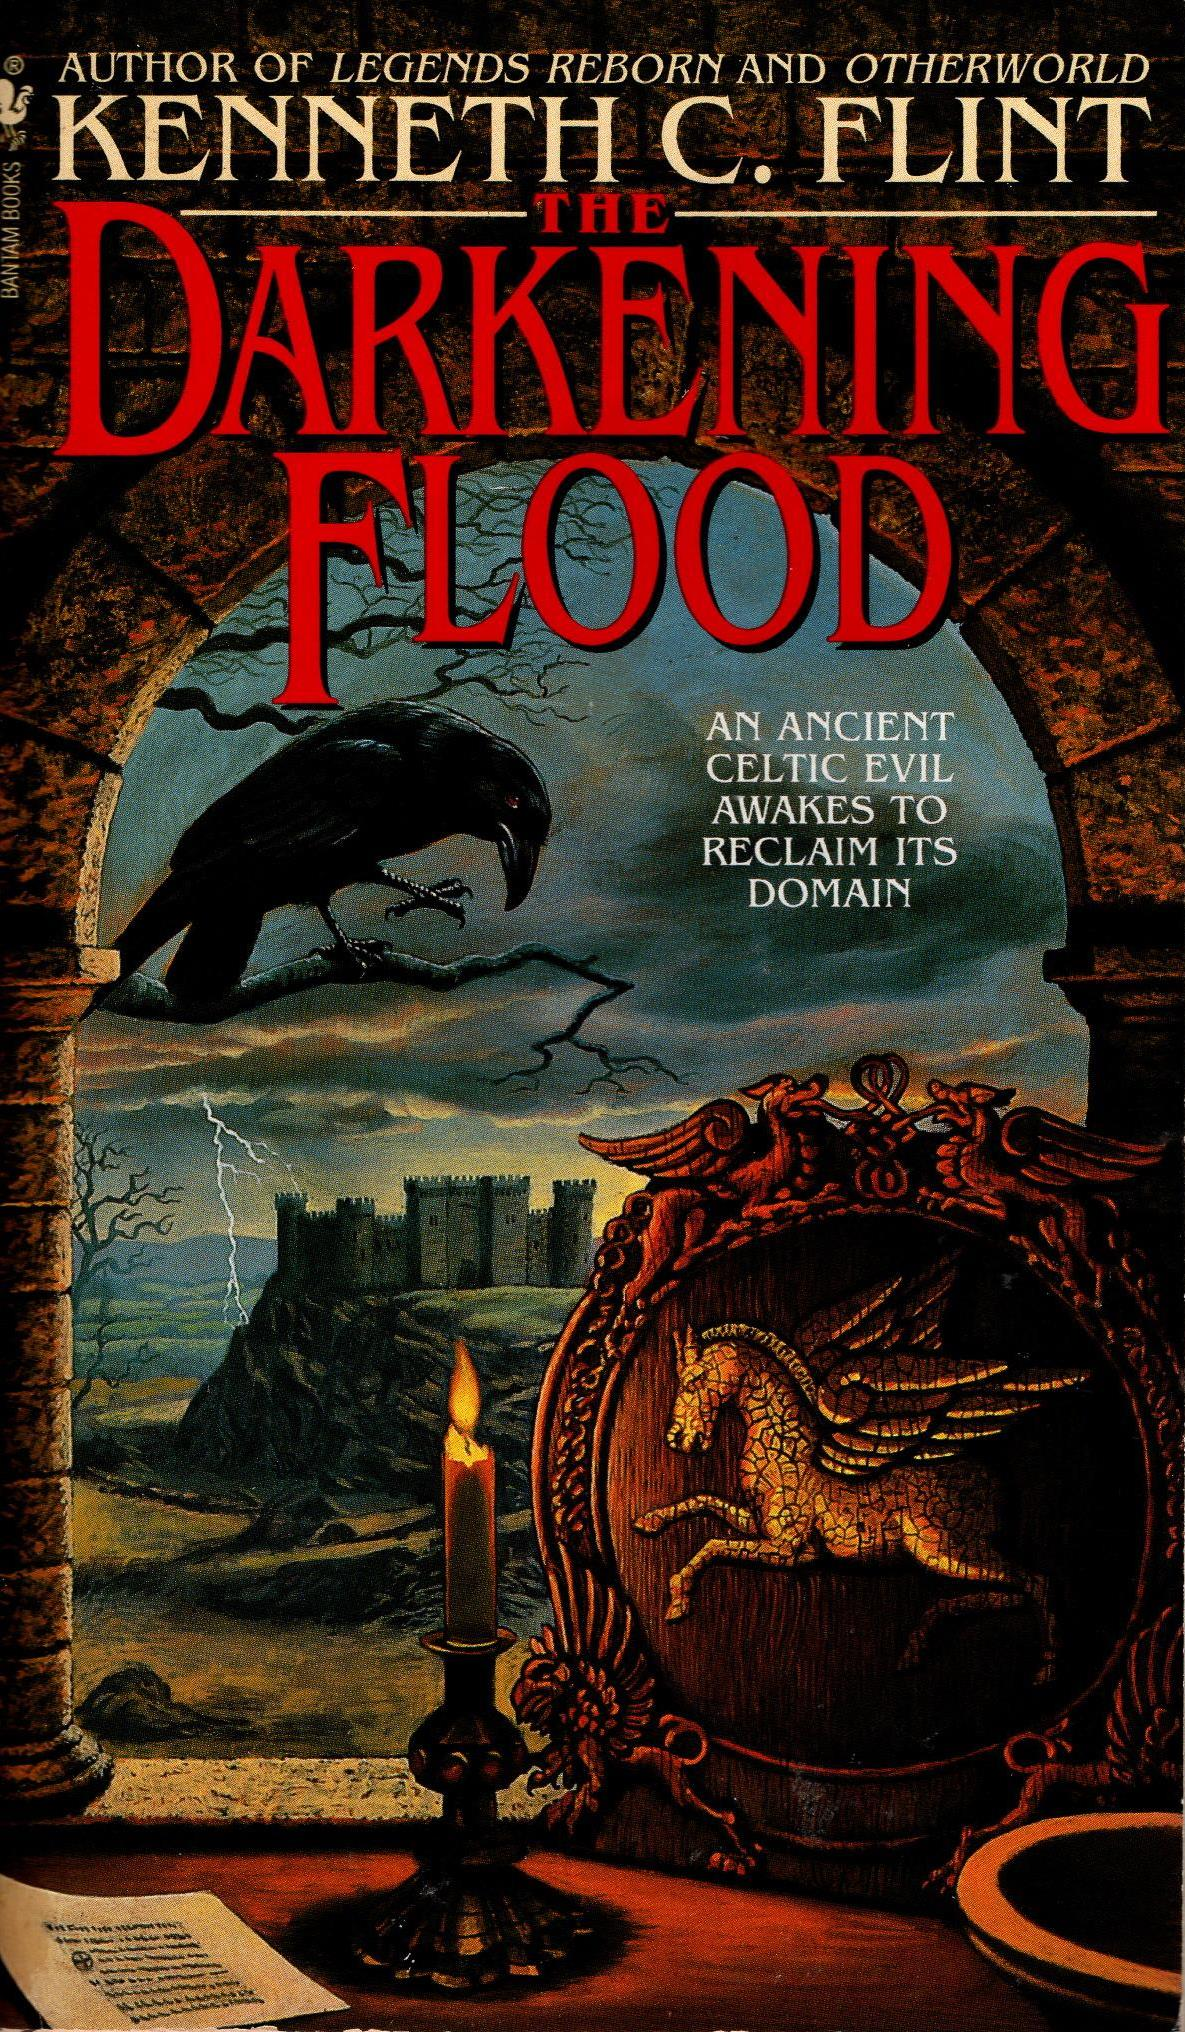 Image for DARKENING FLOOD, THE